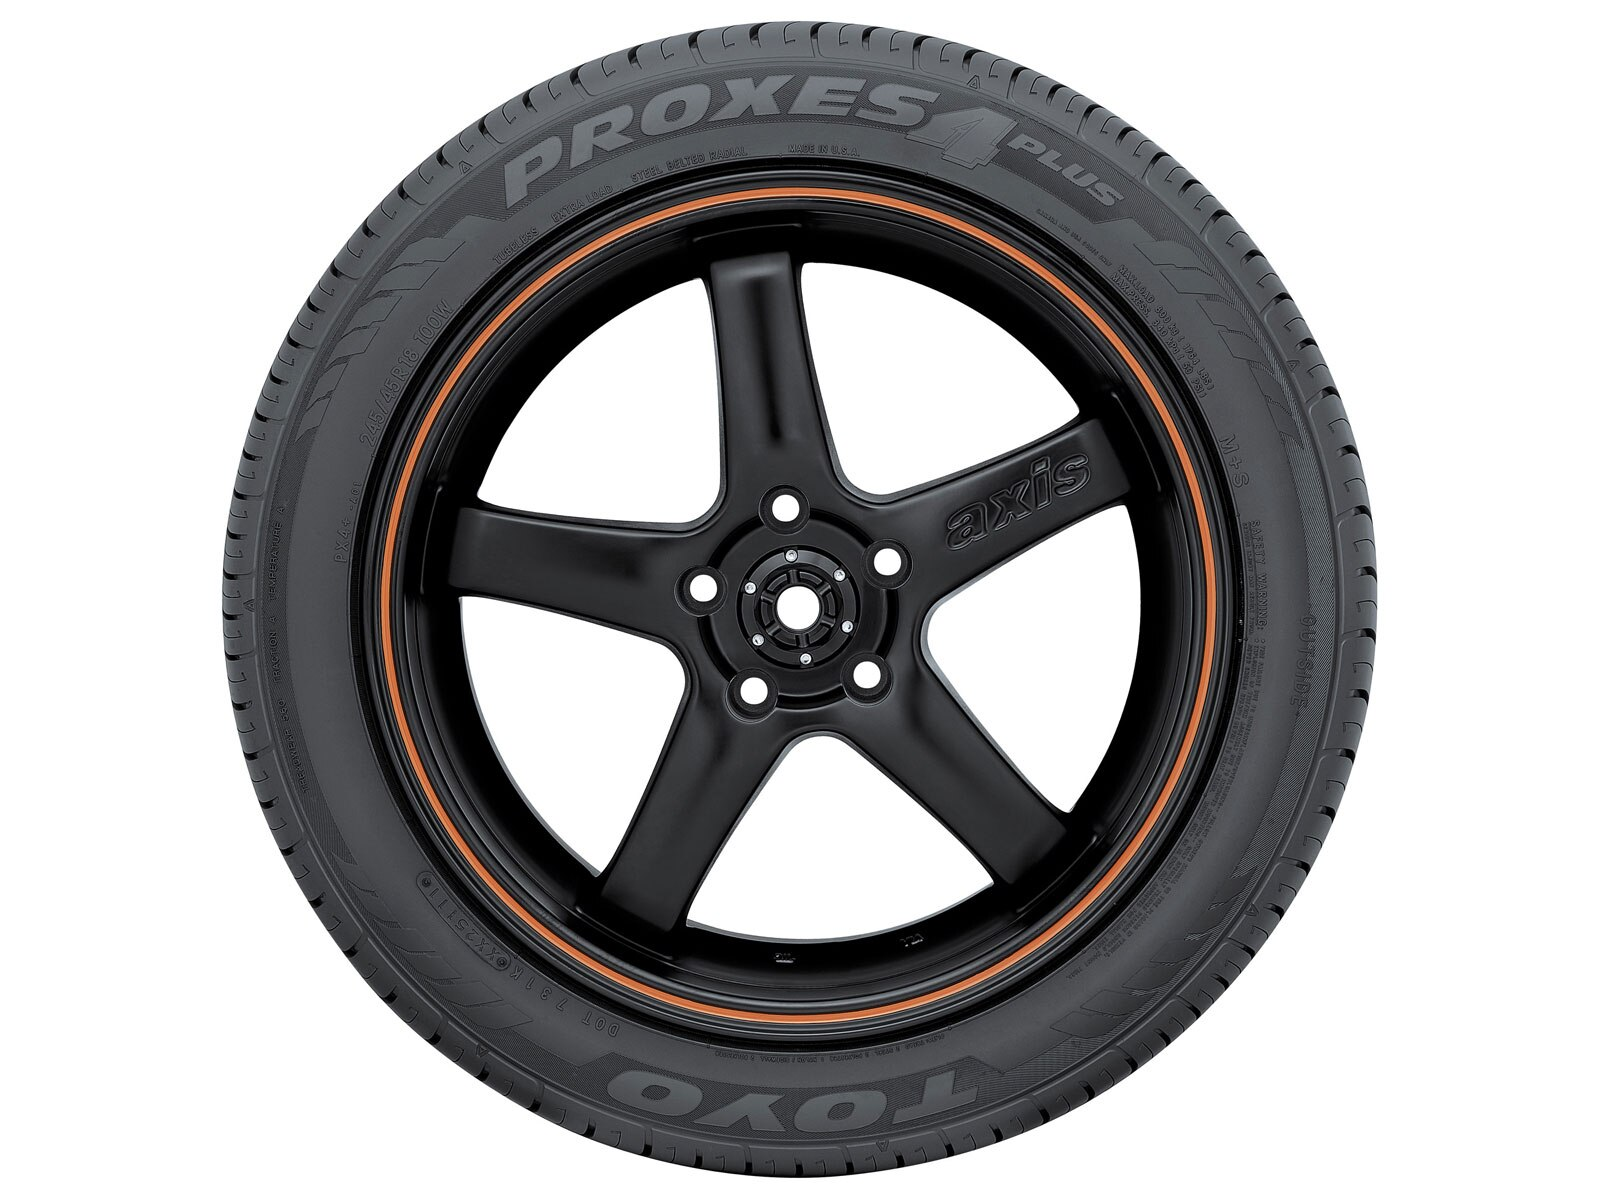 1305-lrmp-01-o-toyo-tires-proxes-4-plus1